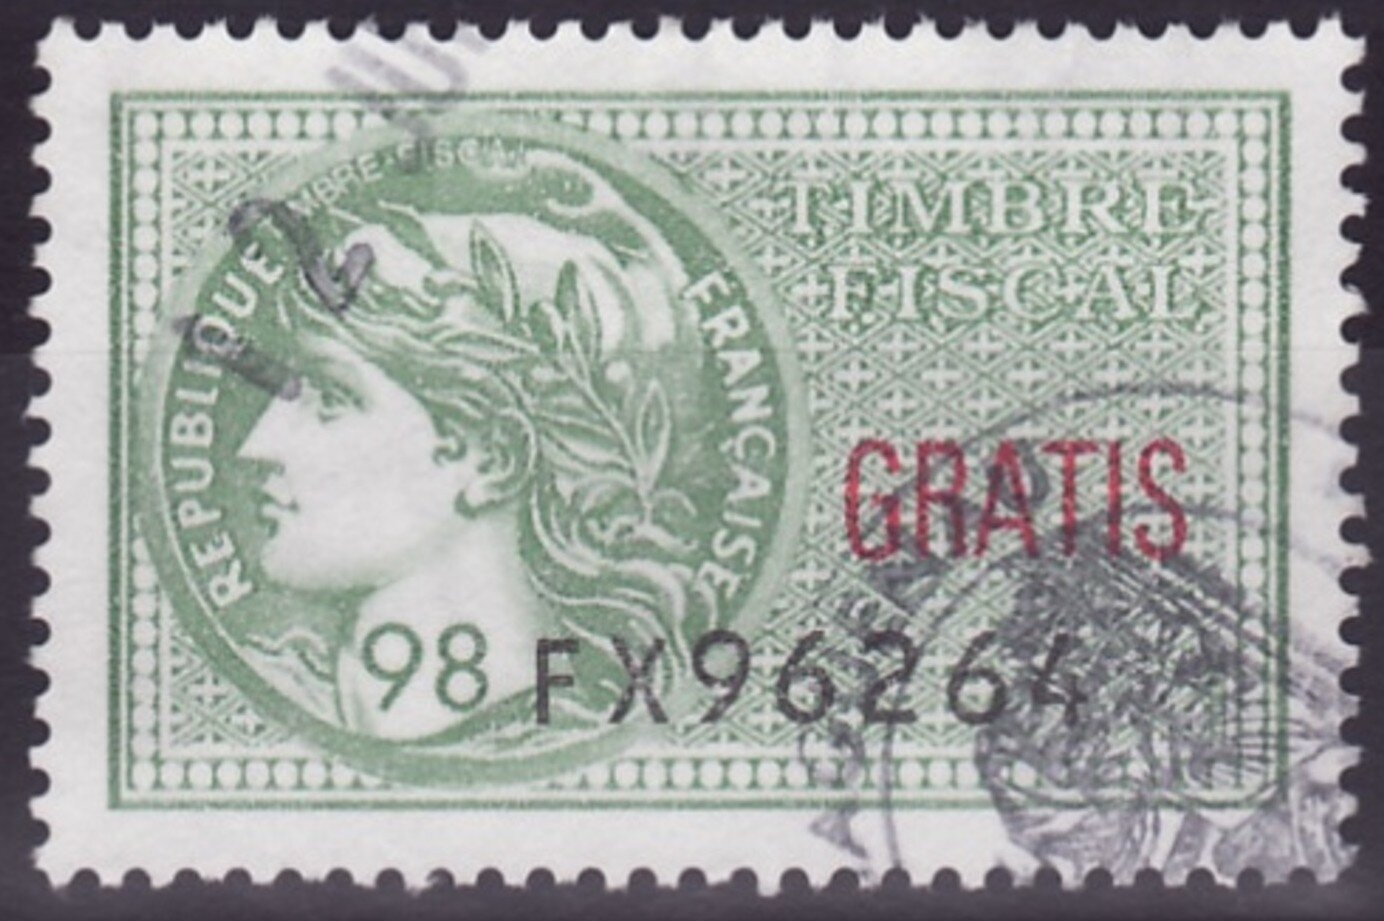 timbres fiscaux datant